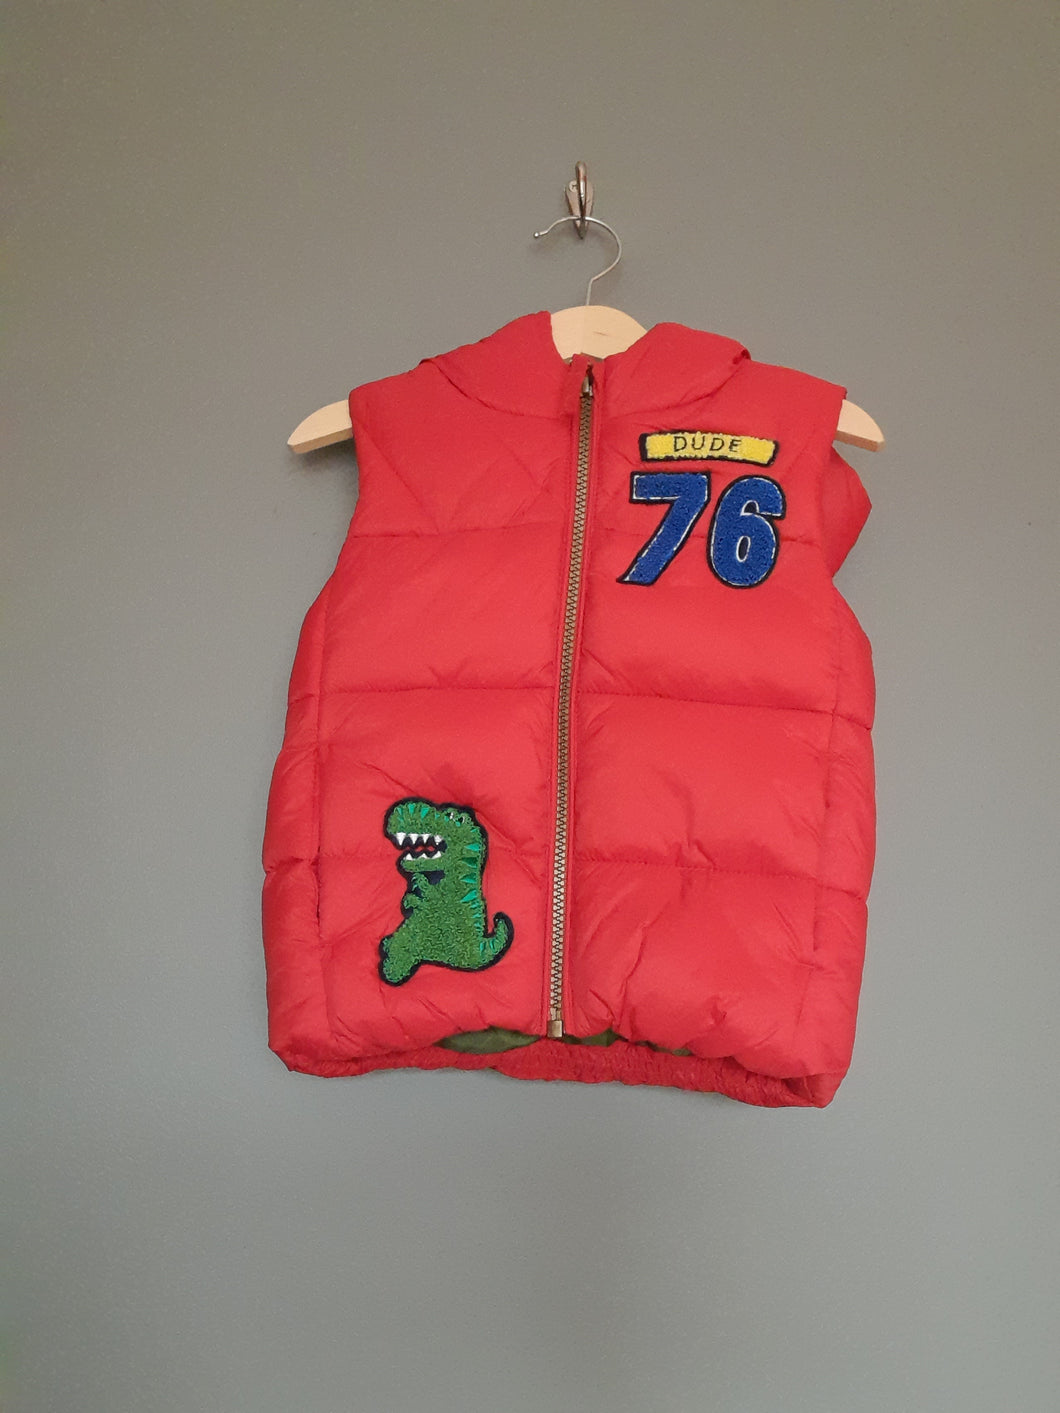 12-18 months red gilet